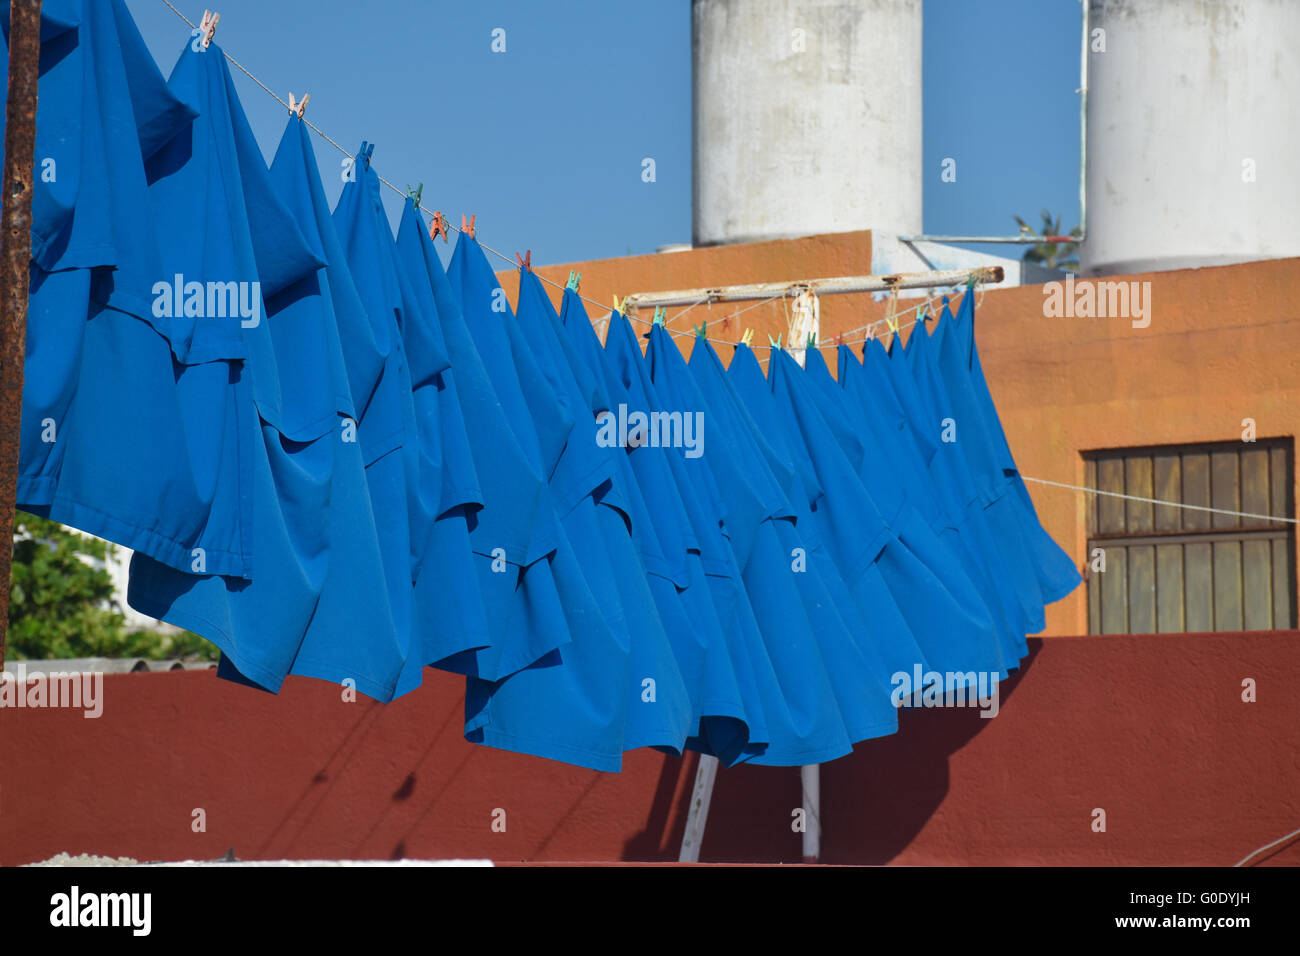 Blue laundry tablecloths on clothesline - Stock Image